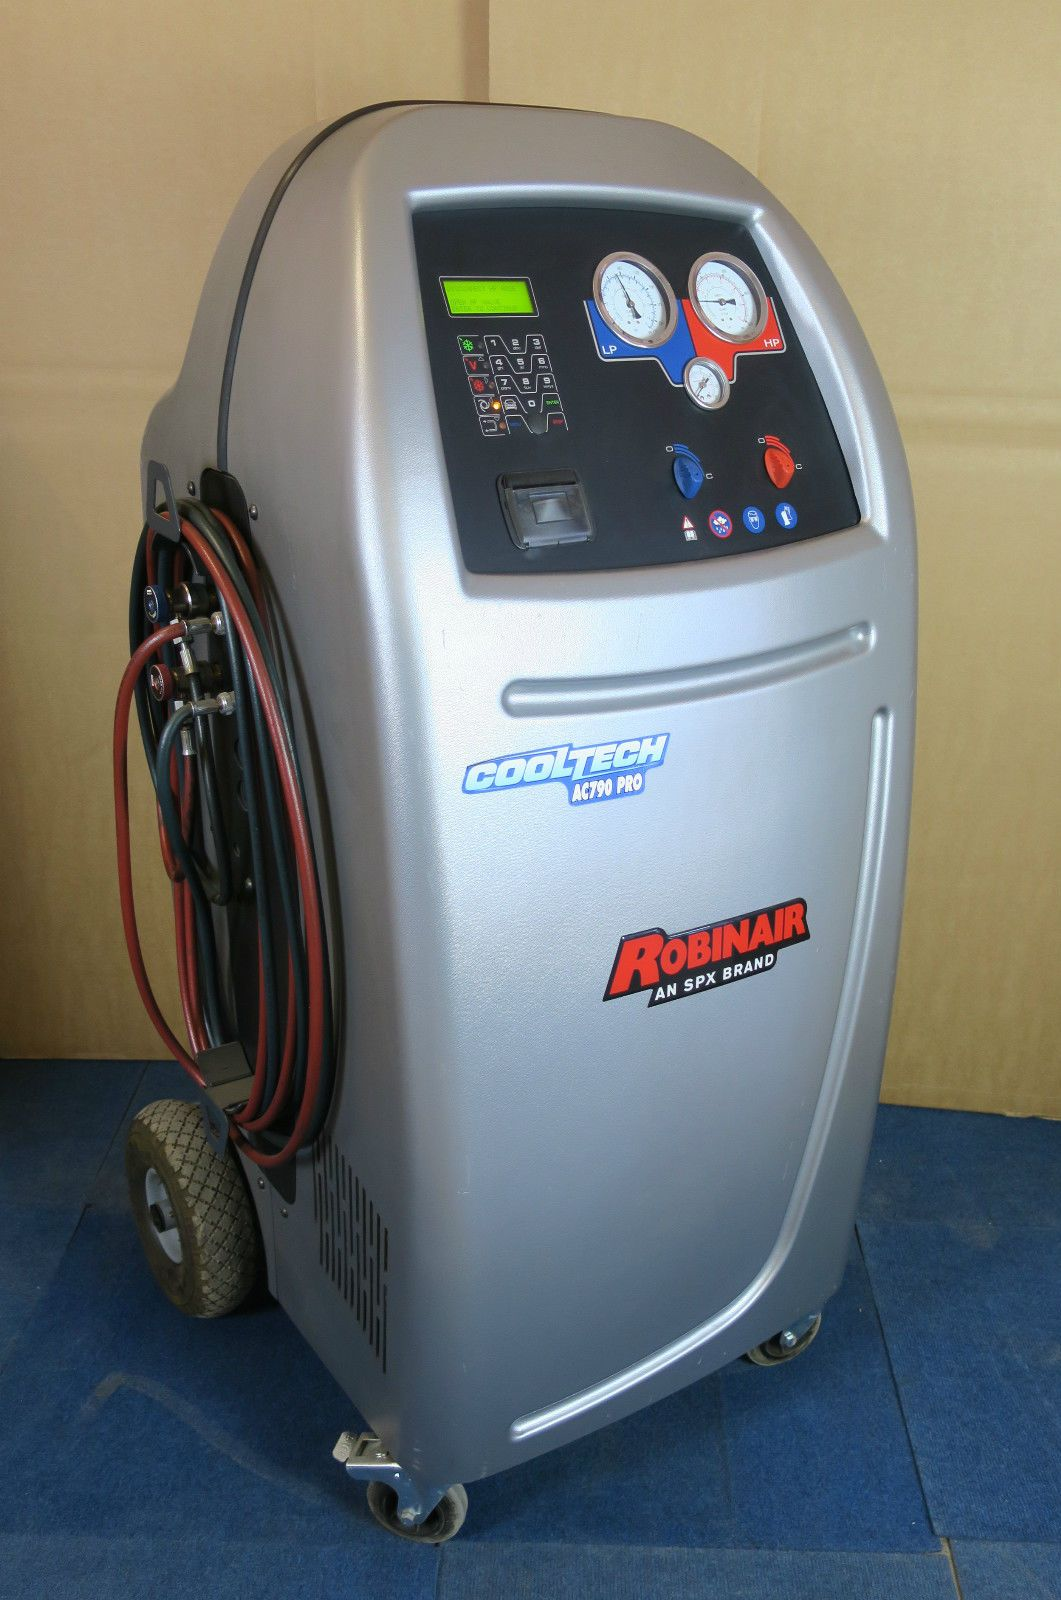 CoolTech Robinair AC790PRO R134a Automatic Air Conditioning A C Vehicle  Service